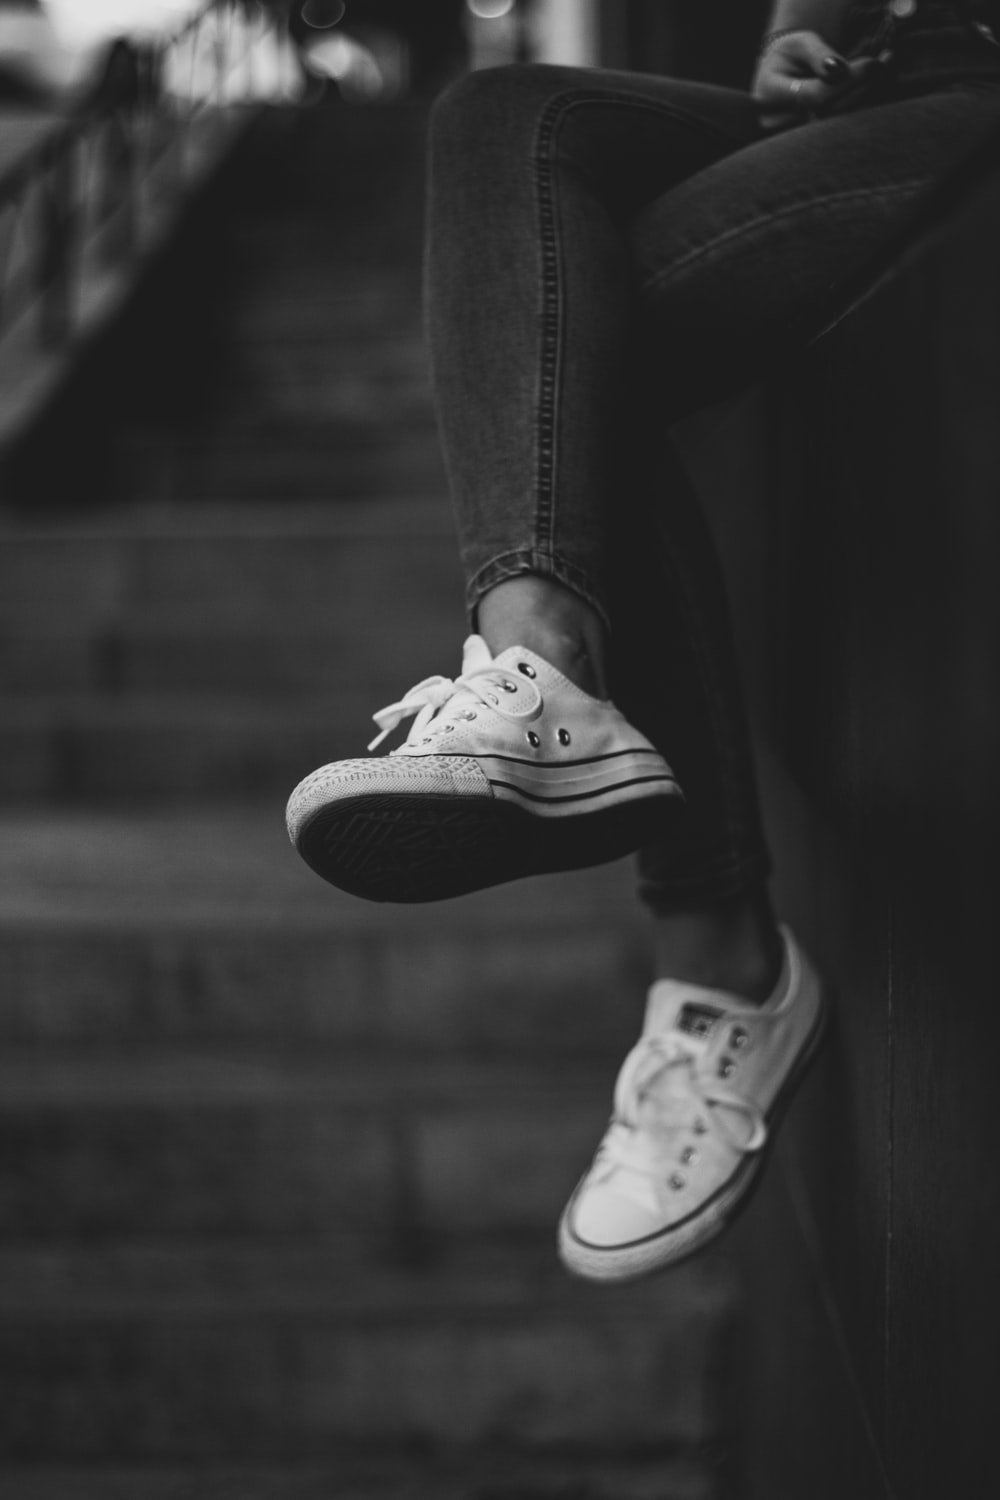 grayscale photography of person wearing jeans and sneakers